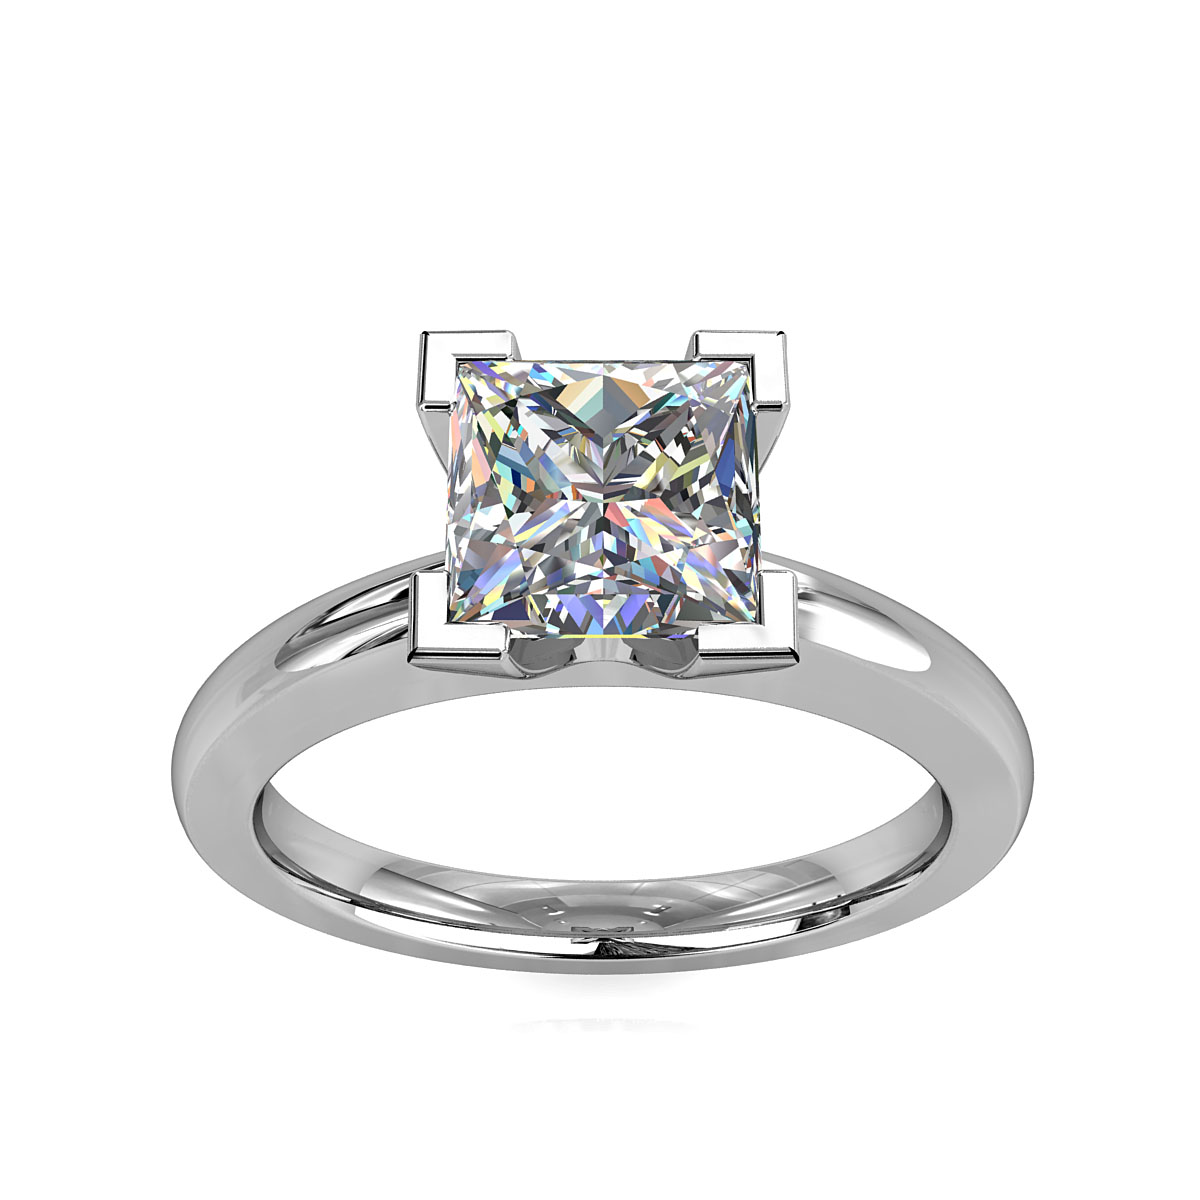 Princess Cut Solitaire Diamond Engagement Ring, 4 Corner Claws on a Flat Band.